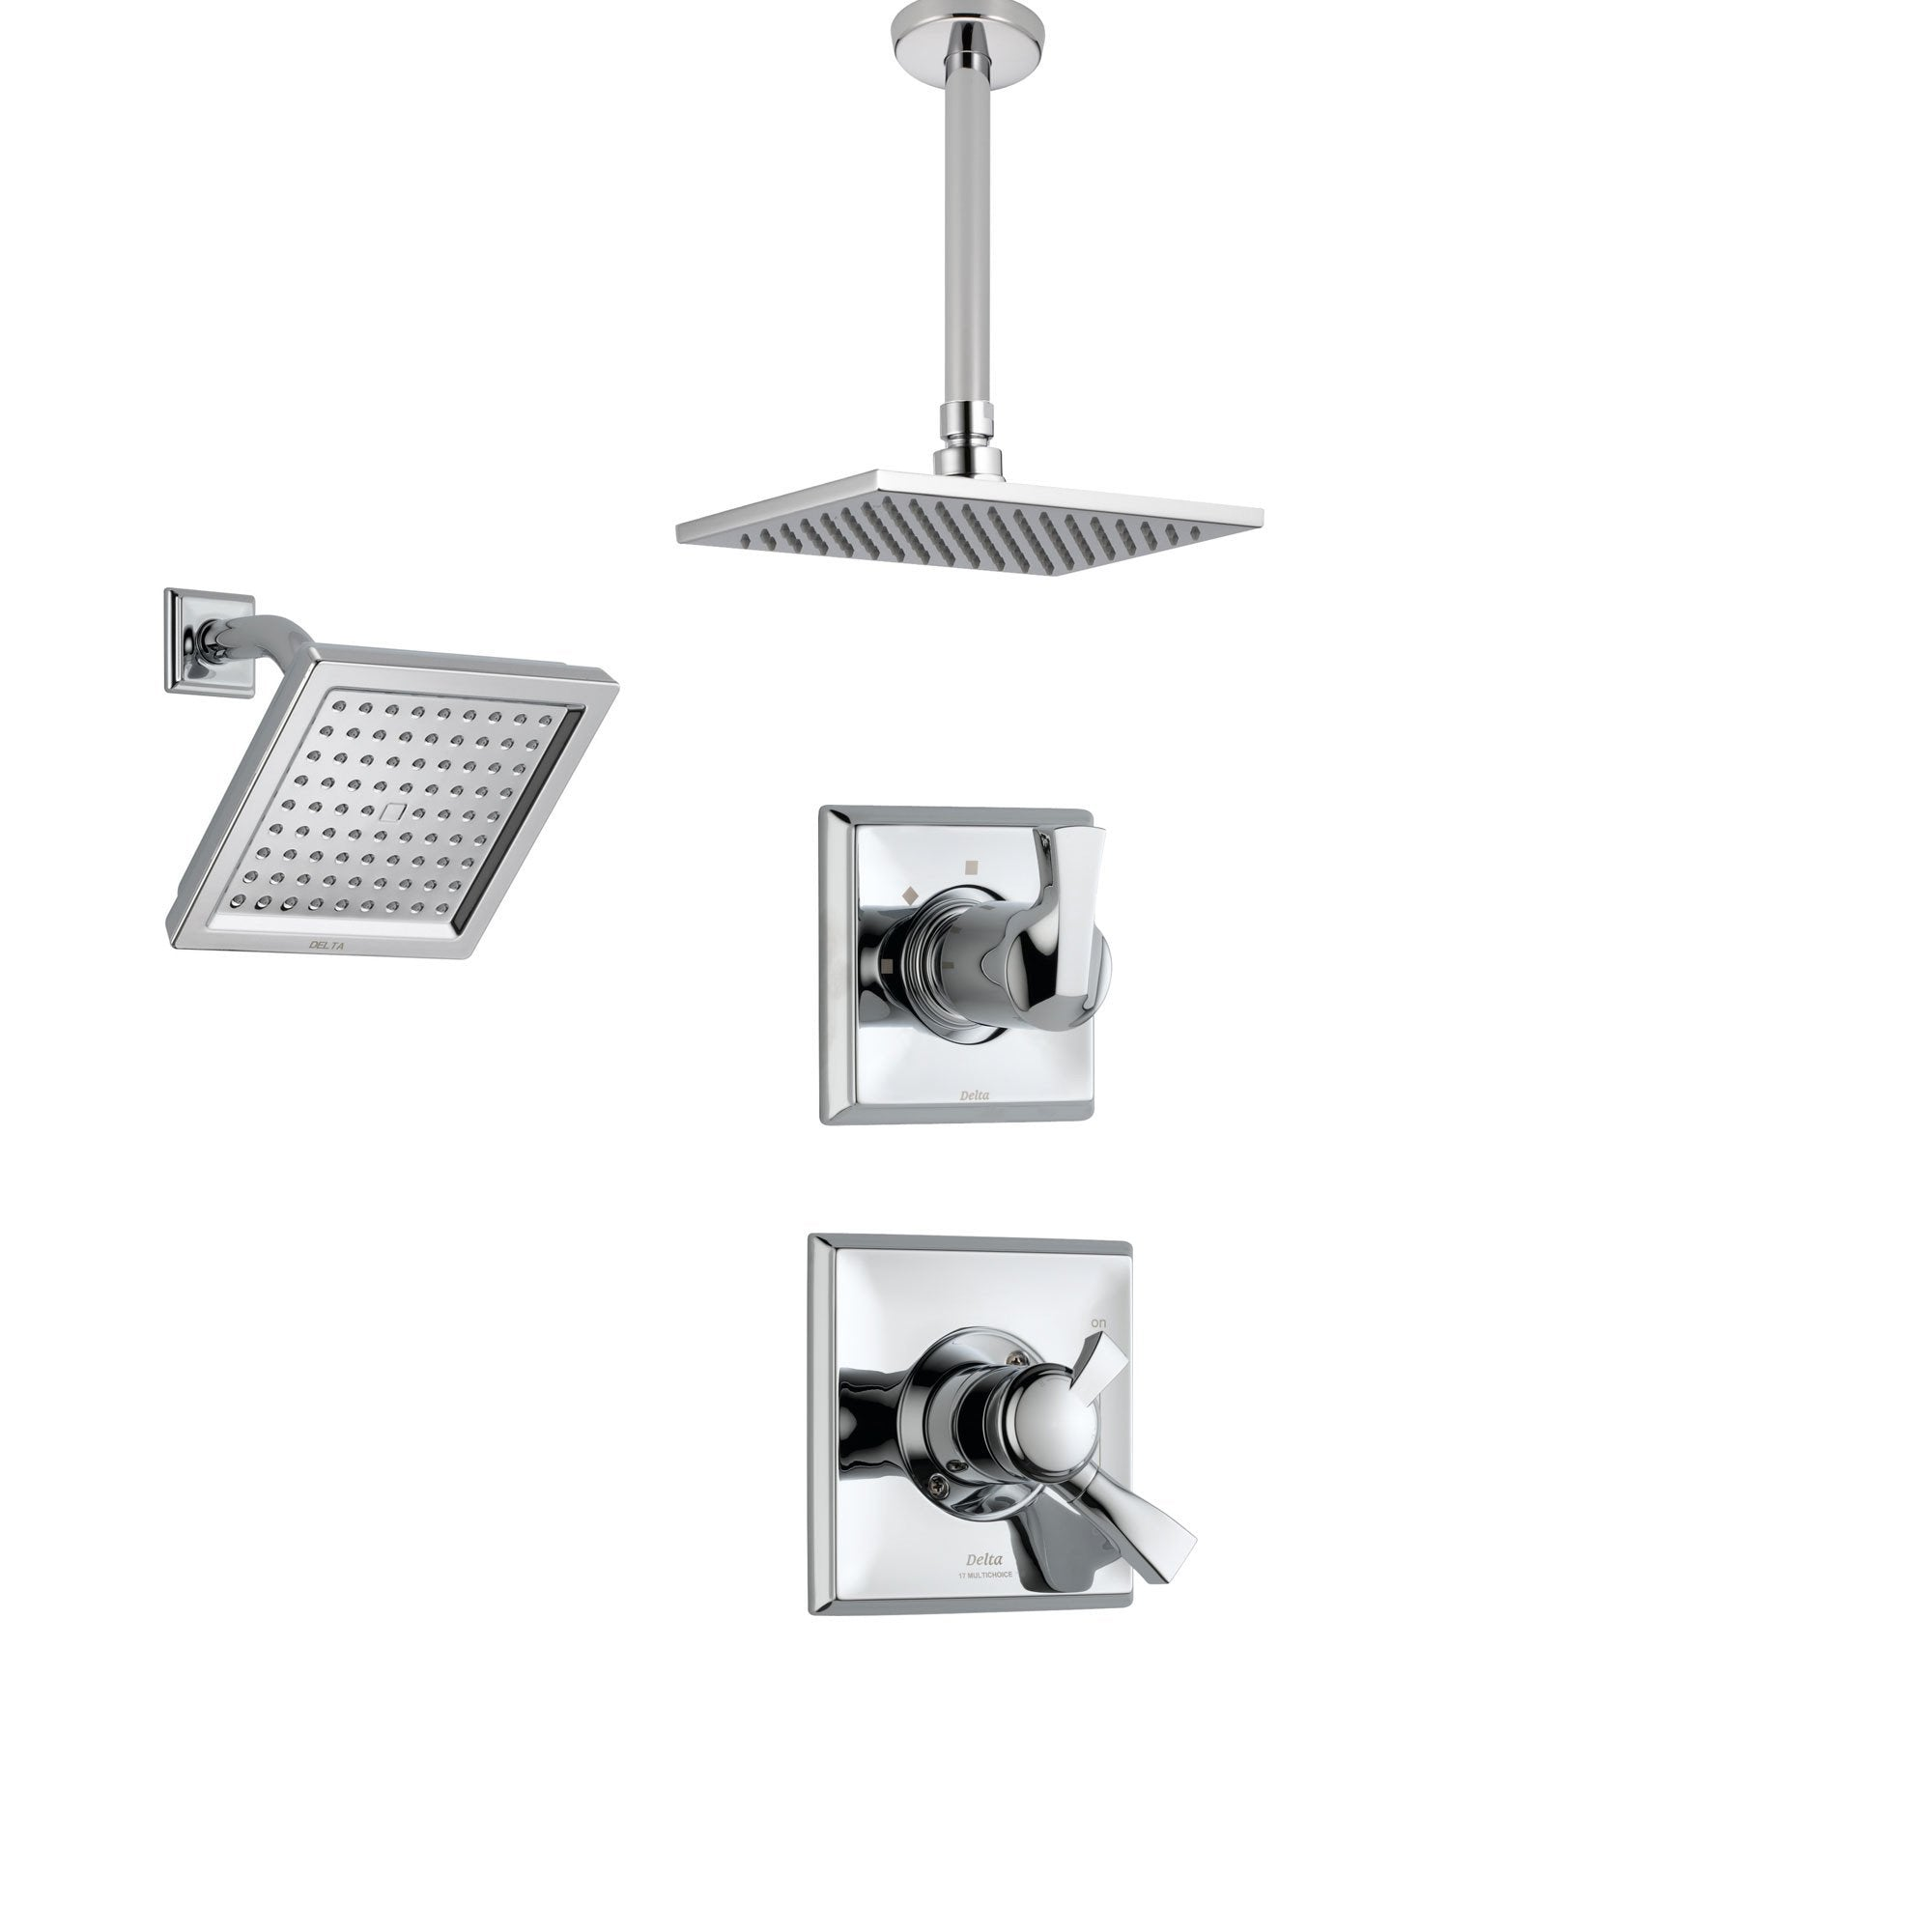 Delta Dryden Chrome Shower System with Dual Control Shower Handle, 3-setting Diverter, Modern Square Ceiling Mount Showerhead, and Wall Mount Showerhead SS175184